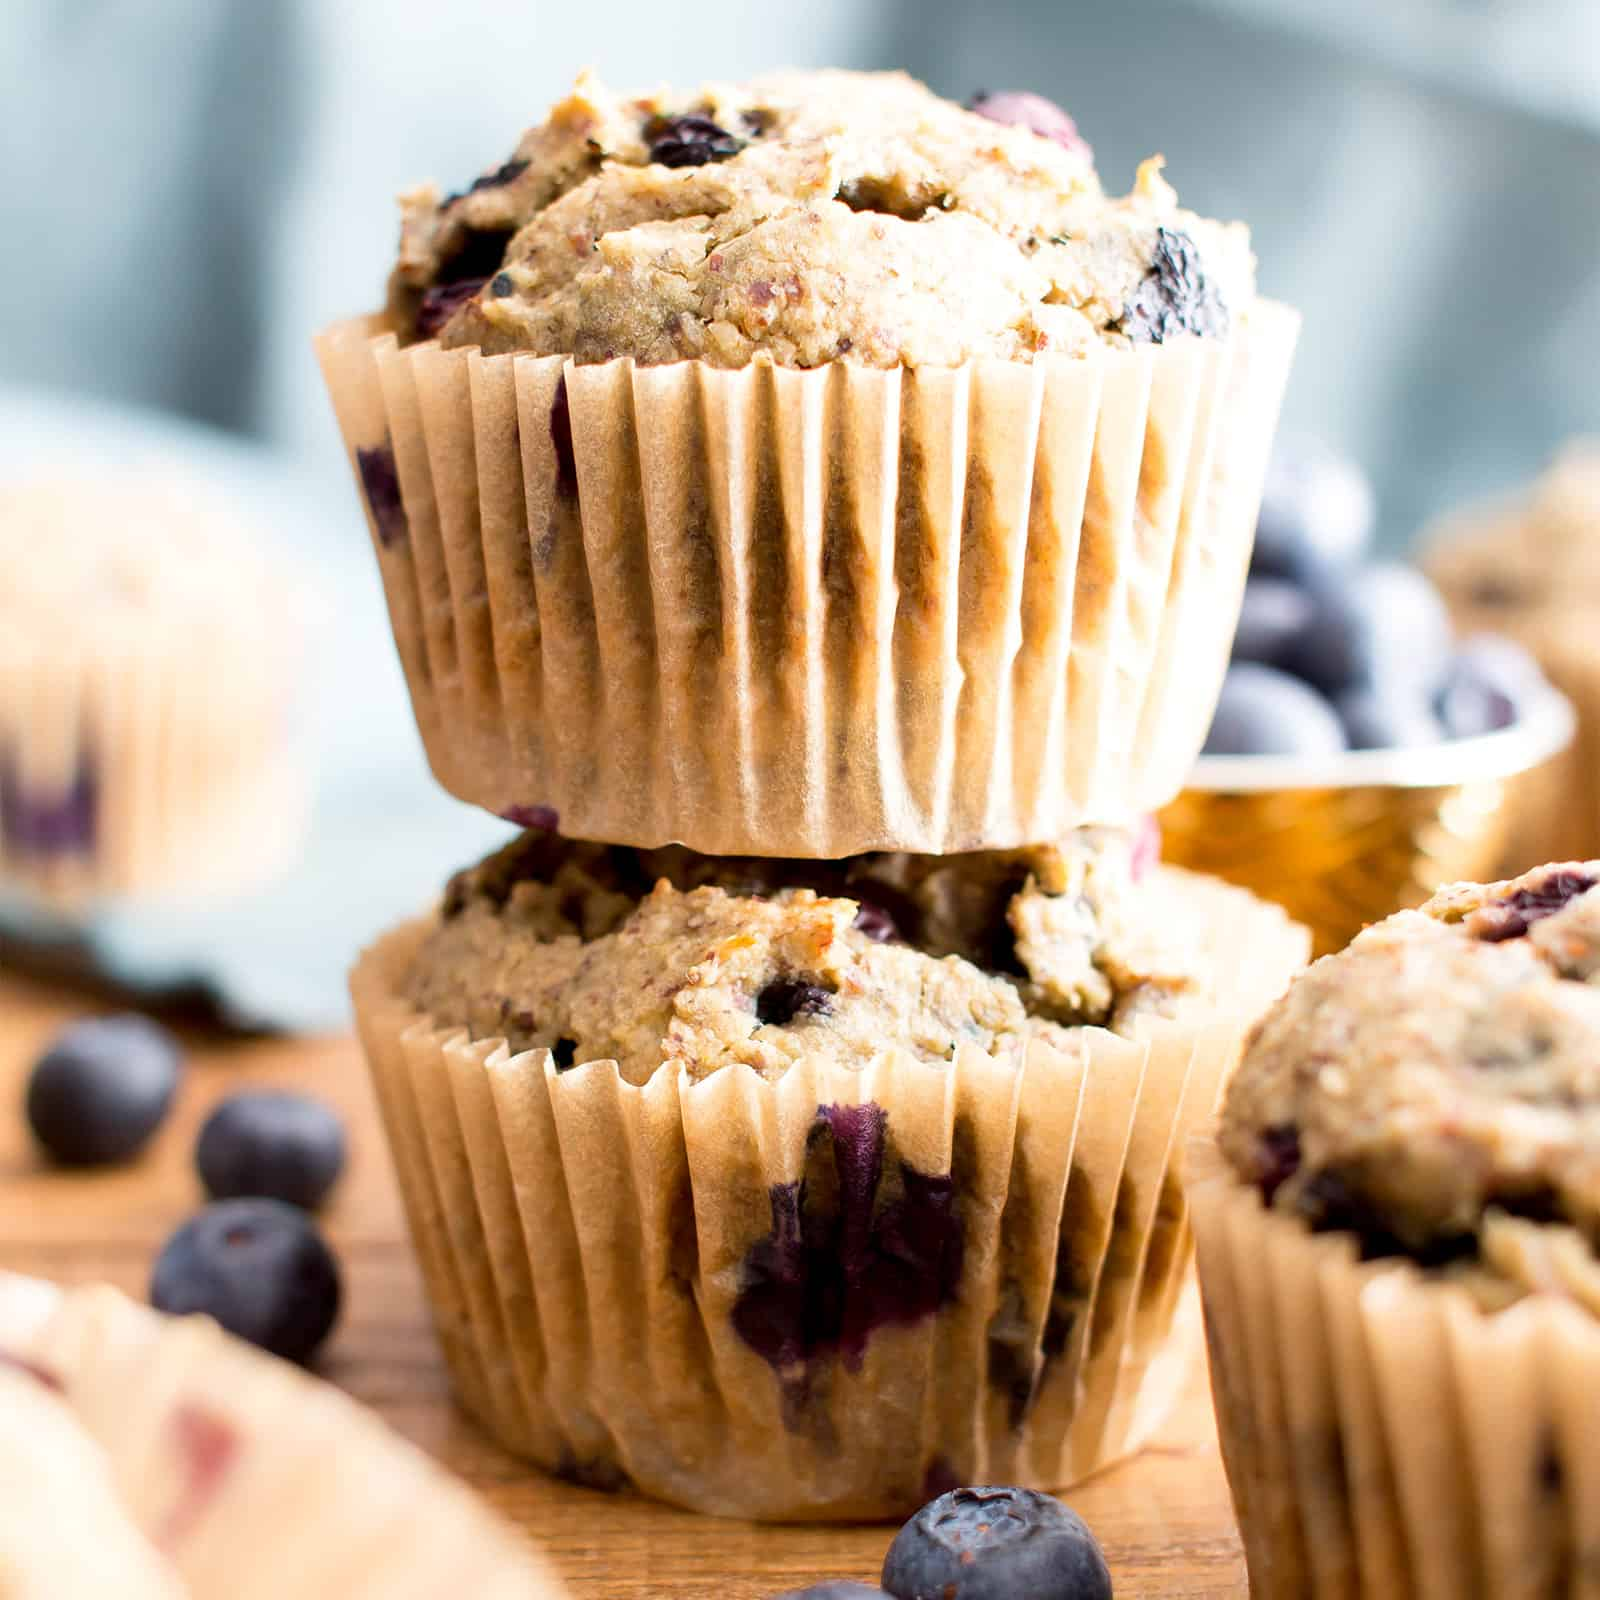 Healthy Banana Blueberry Muffins Recipe Gluten Free Vegan Dairy Free Refined Sugar Free